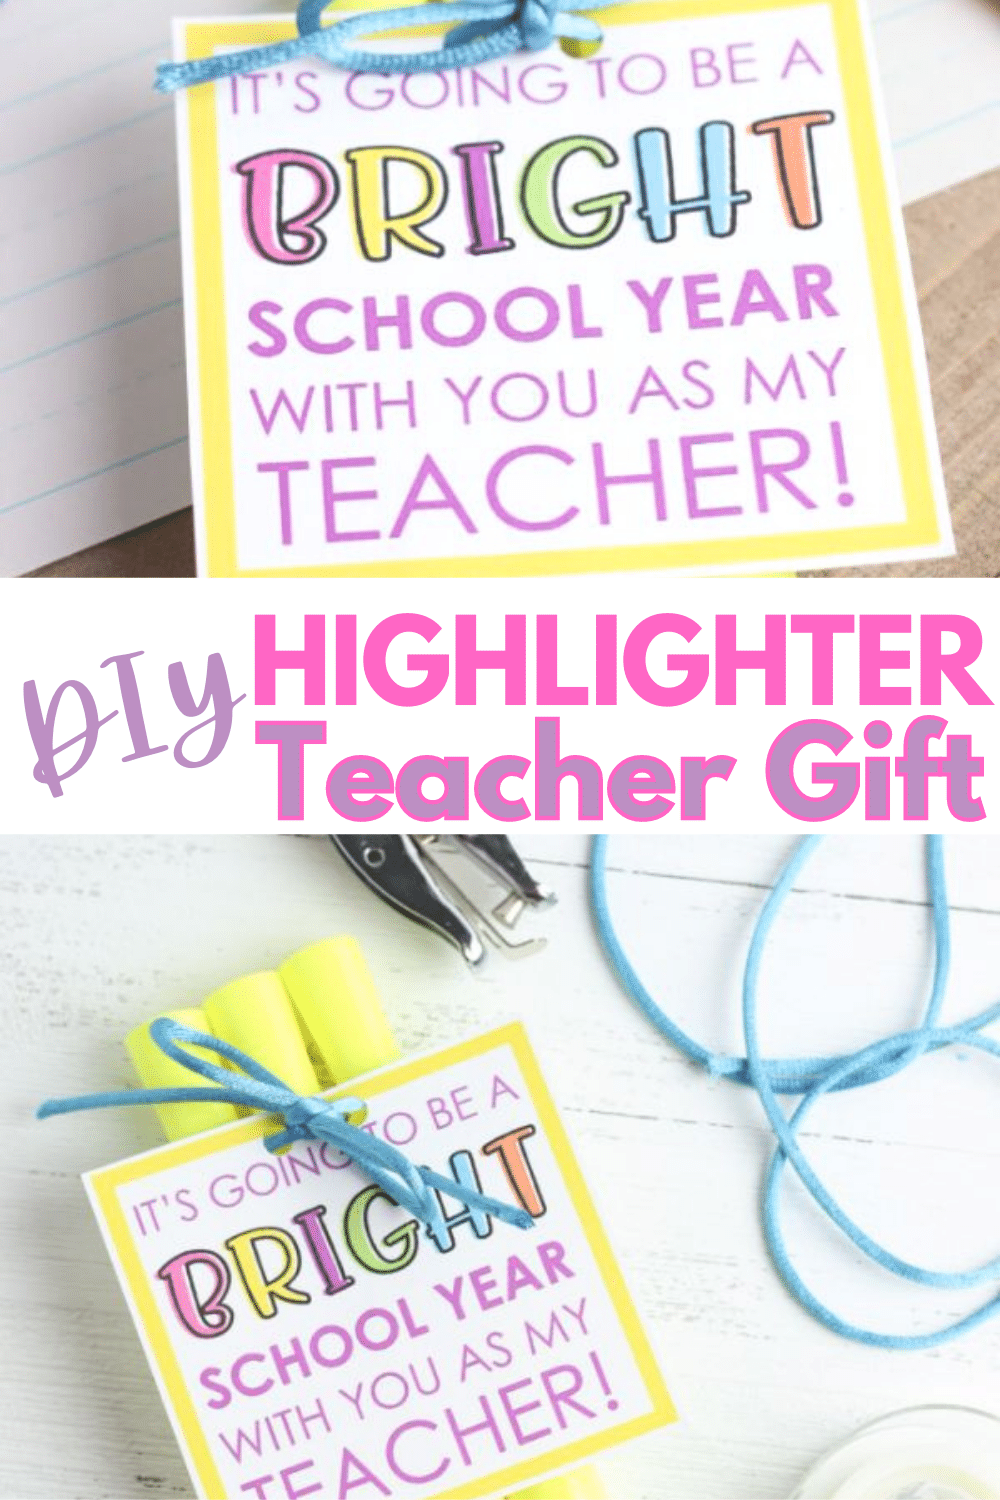 A Highlighter Teacher Gift is easy to make with this free printable gift tag. Attach the tag to some highlighters for a great teacher gift. #teachergift #printables #printablegifttags via @wondermomwannab